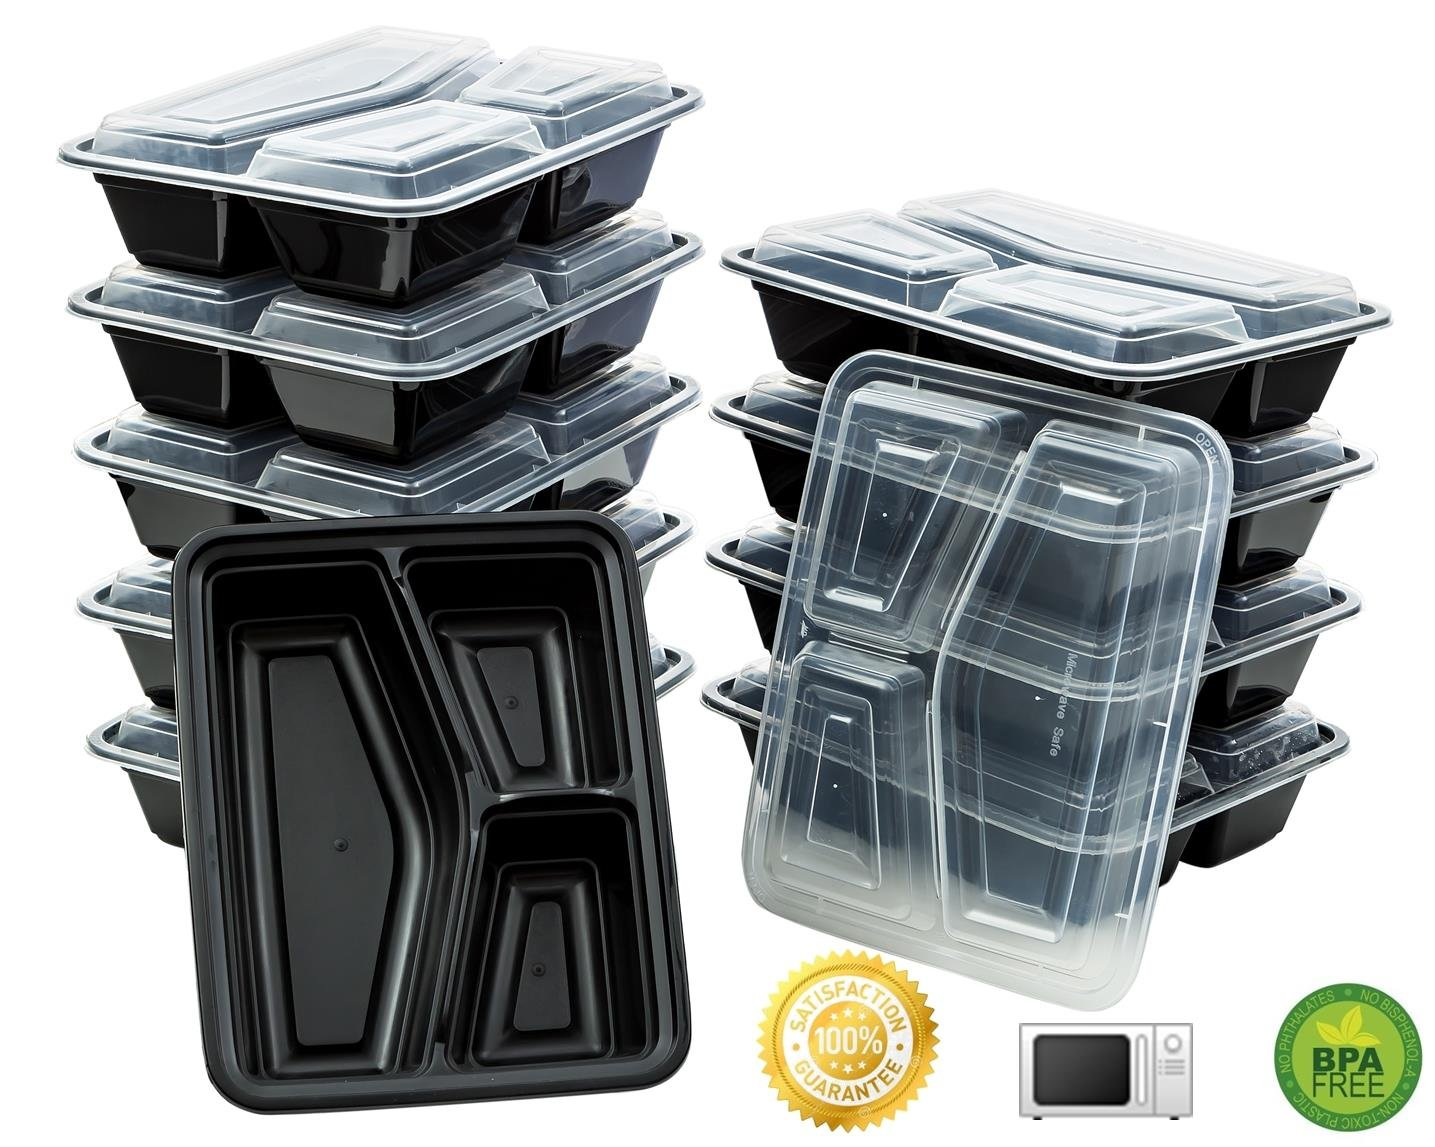 10 Meal Prep Containers 3 Compartment Food Storage Plastic